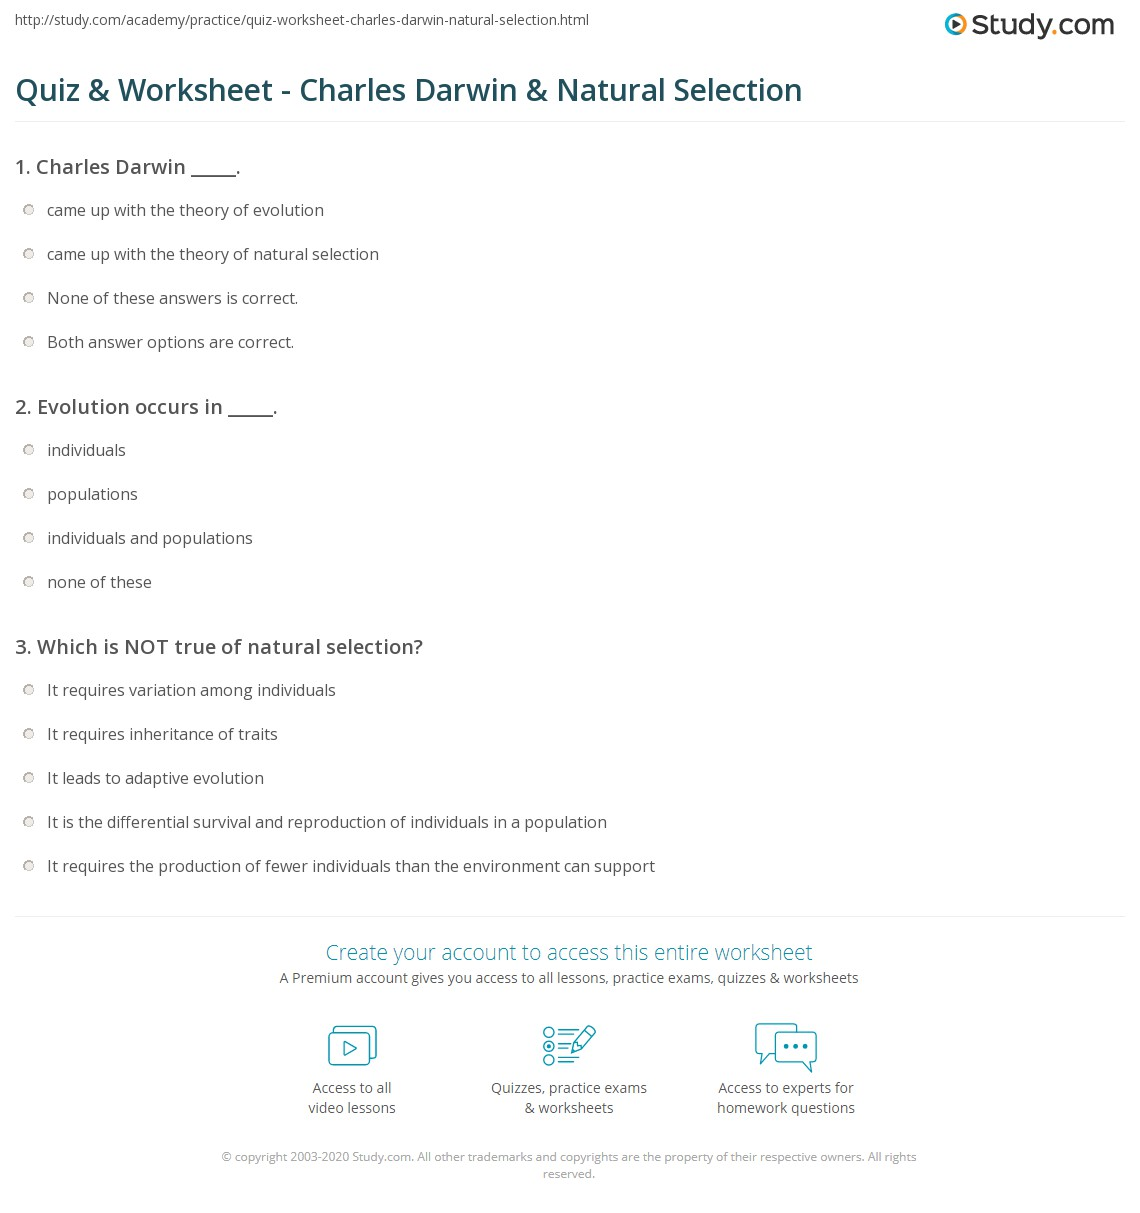 quiz worksheet charles darwin natural selection com print who was charles darwin theory of evolution natural selection worksheet